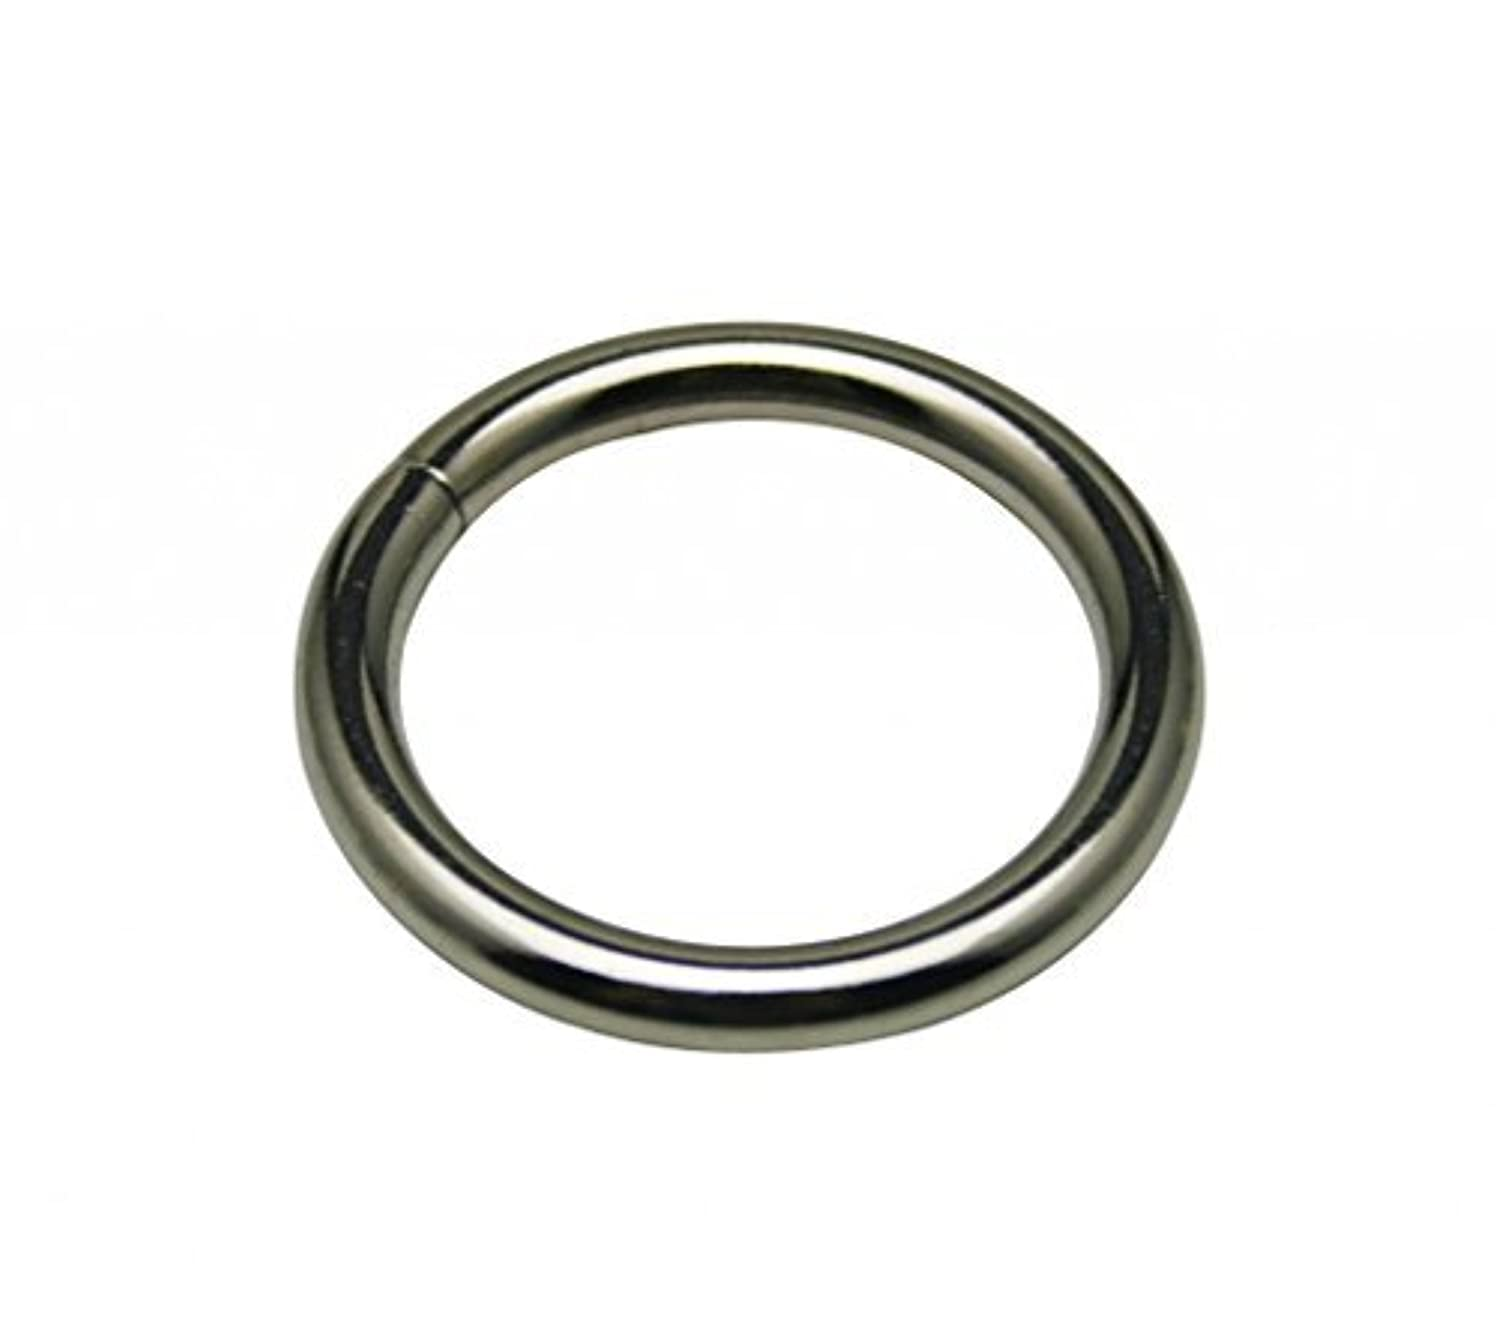 Generic Metal Silvery Annular Ring Buckle 1.5